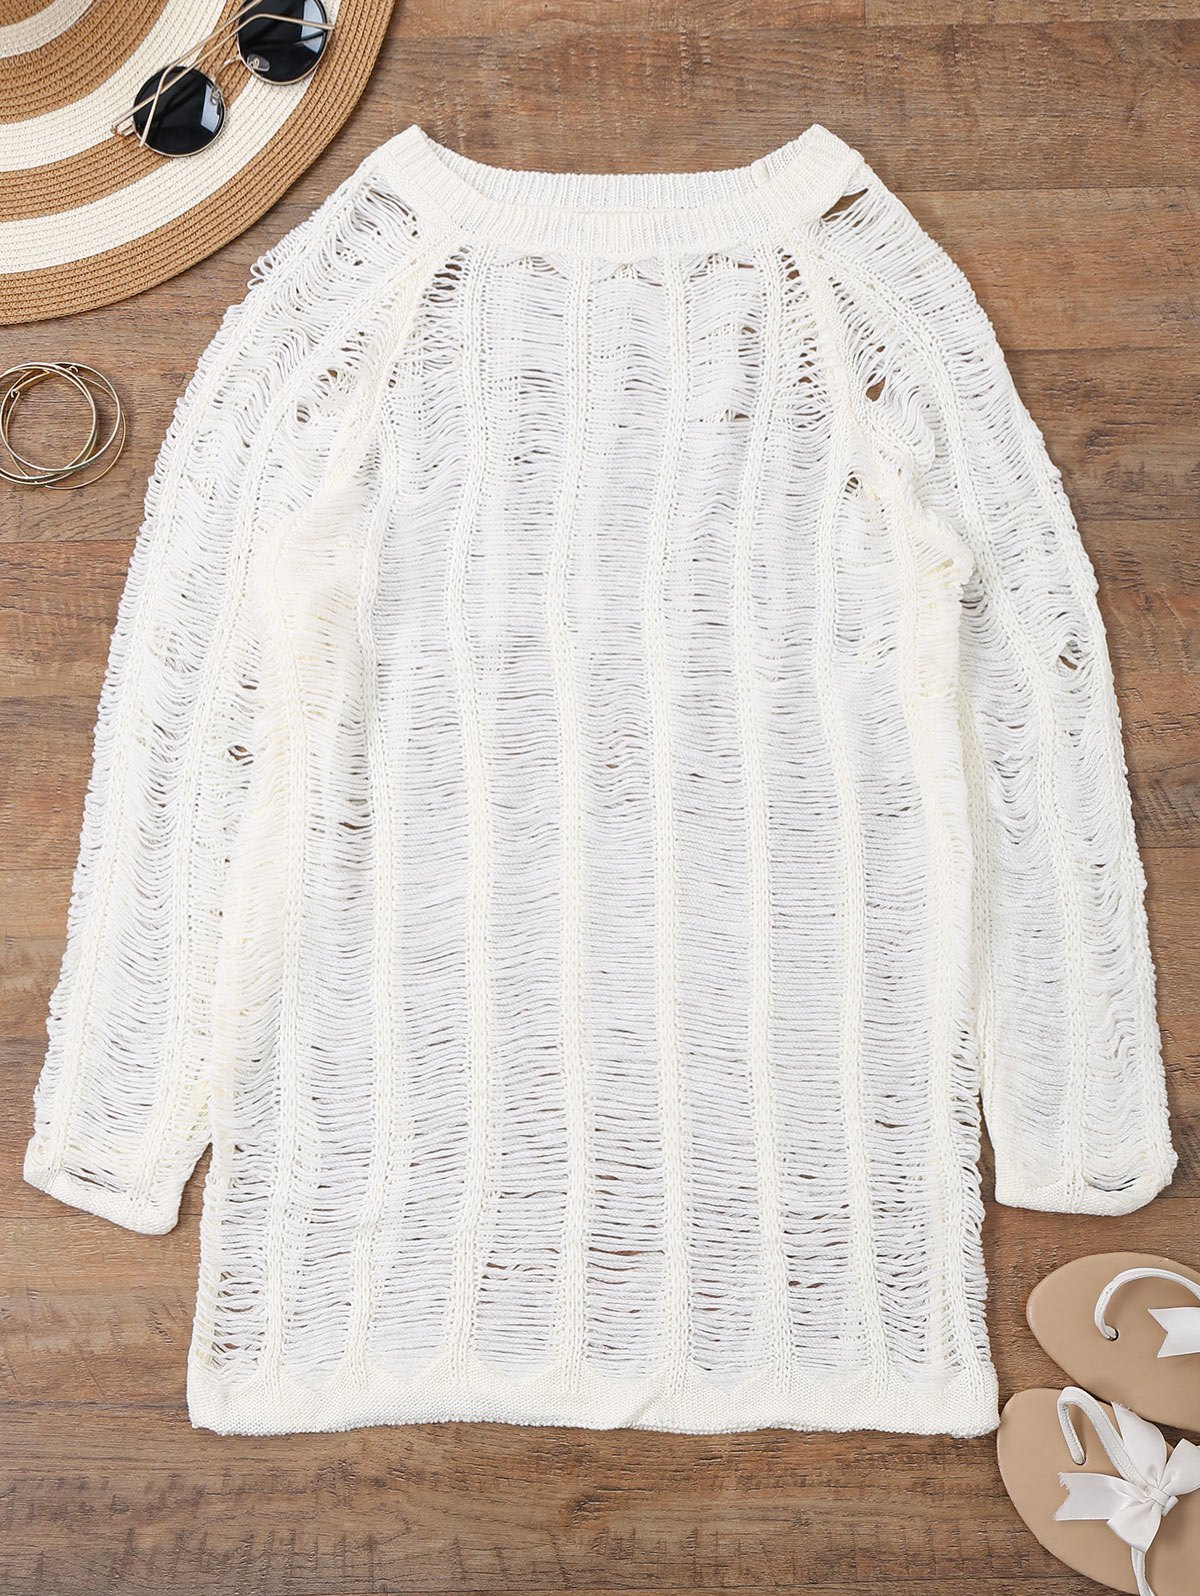 Long Sleeves Sheer Beach Cover Up Dress, White